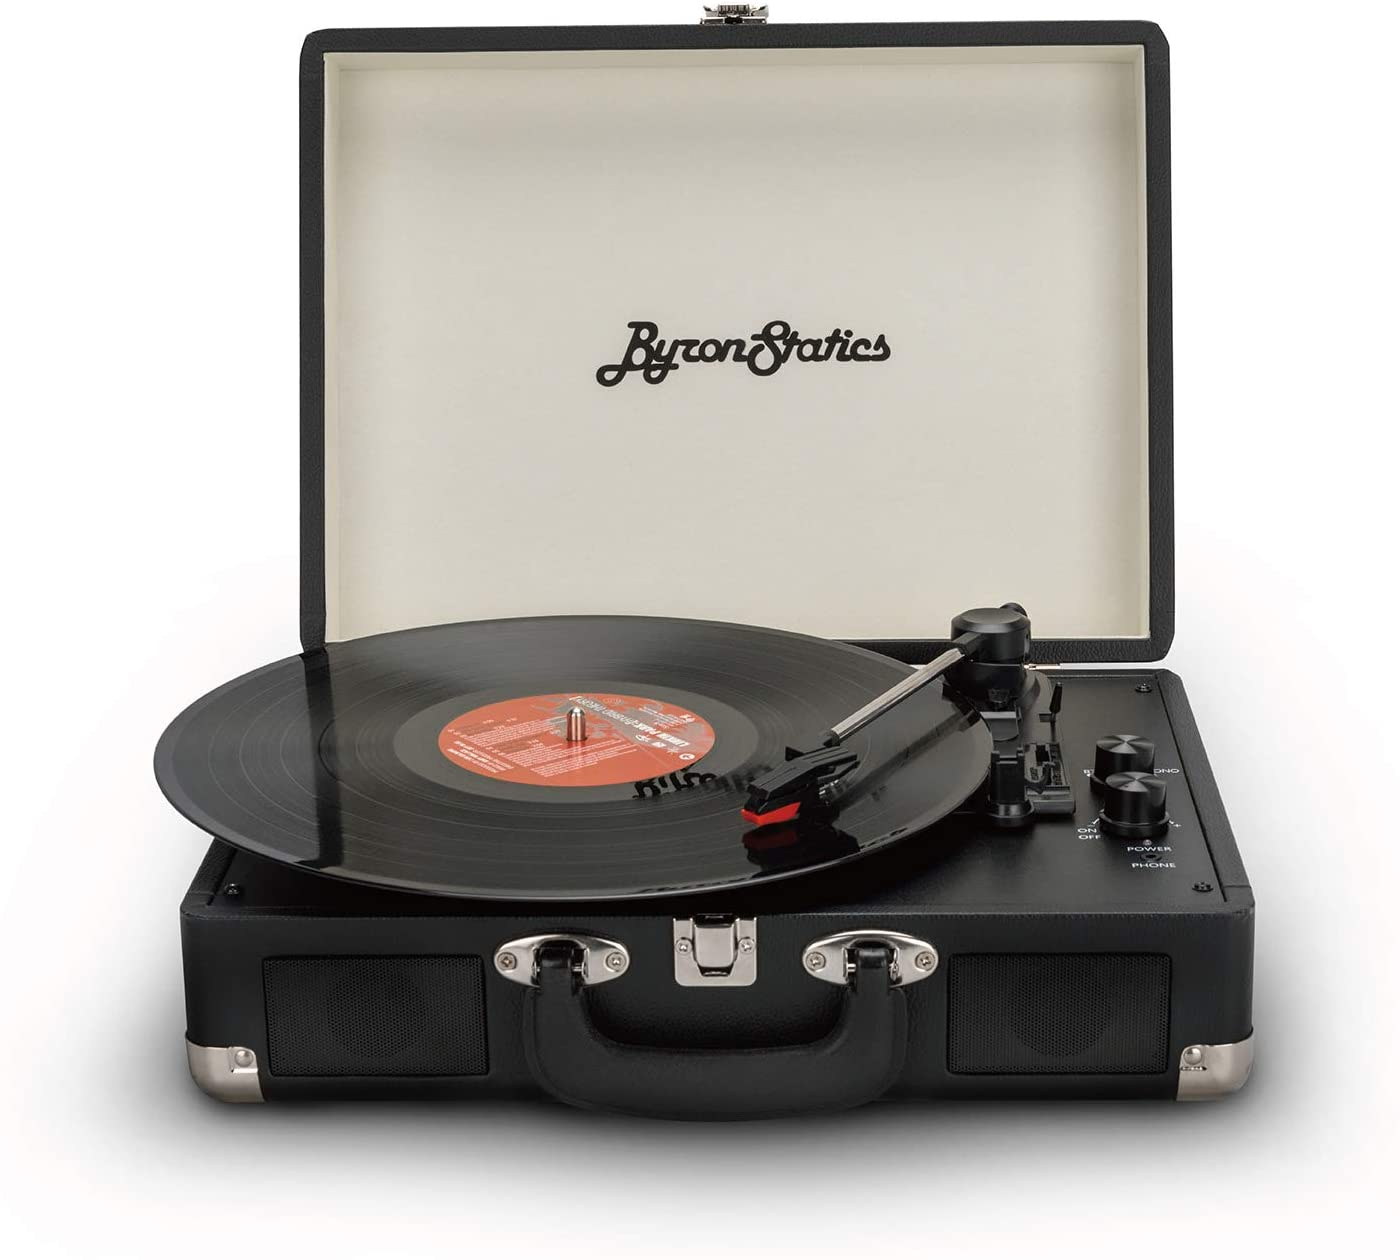 christmas-gifts-for-brothers-record-player